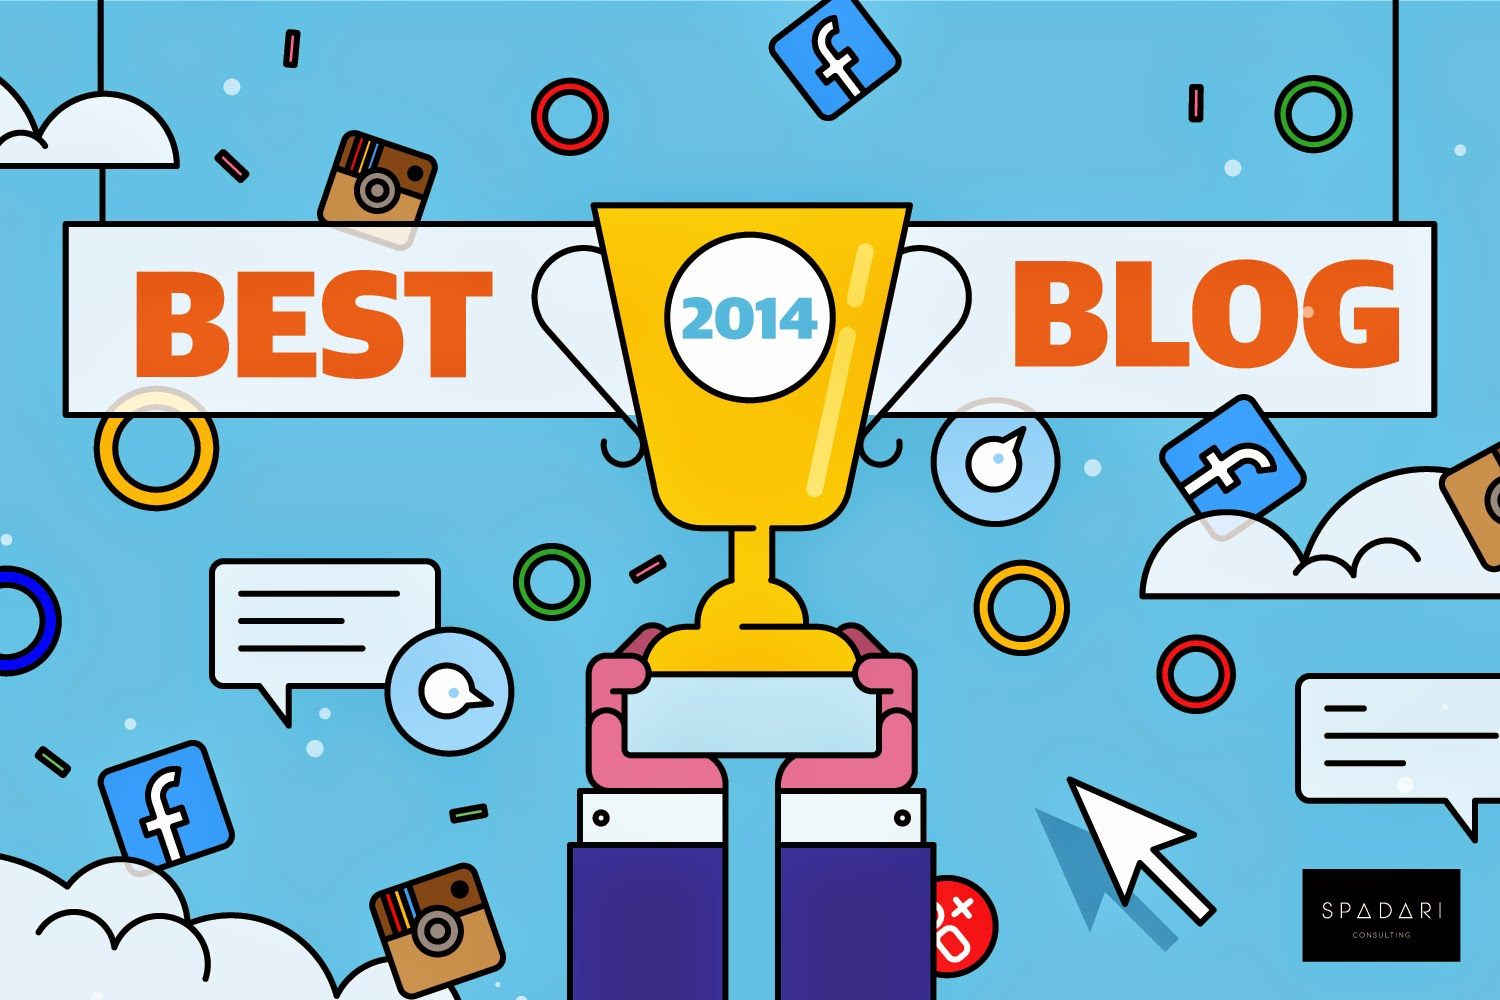 Best Blog 2014!!!